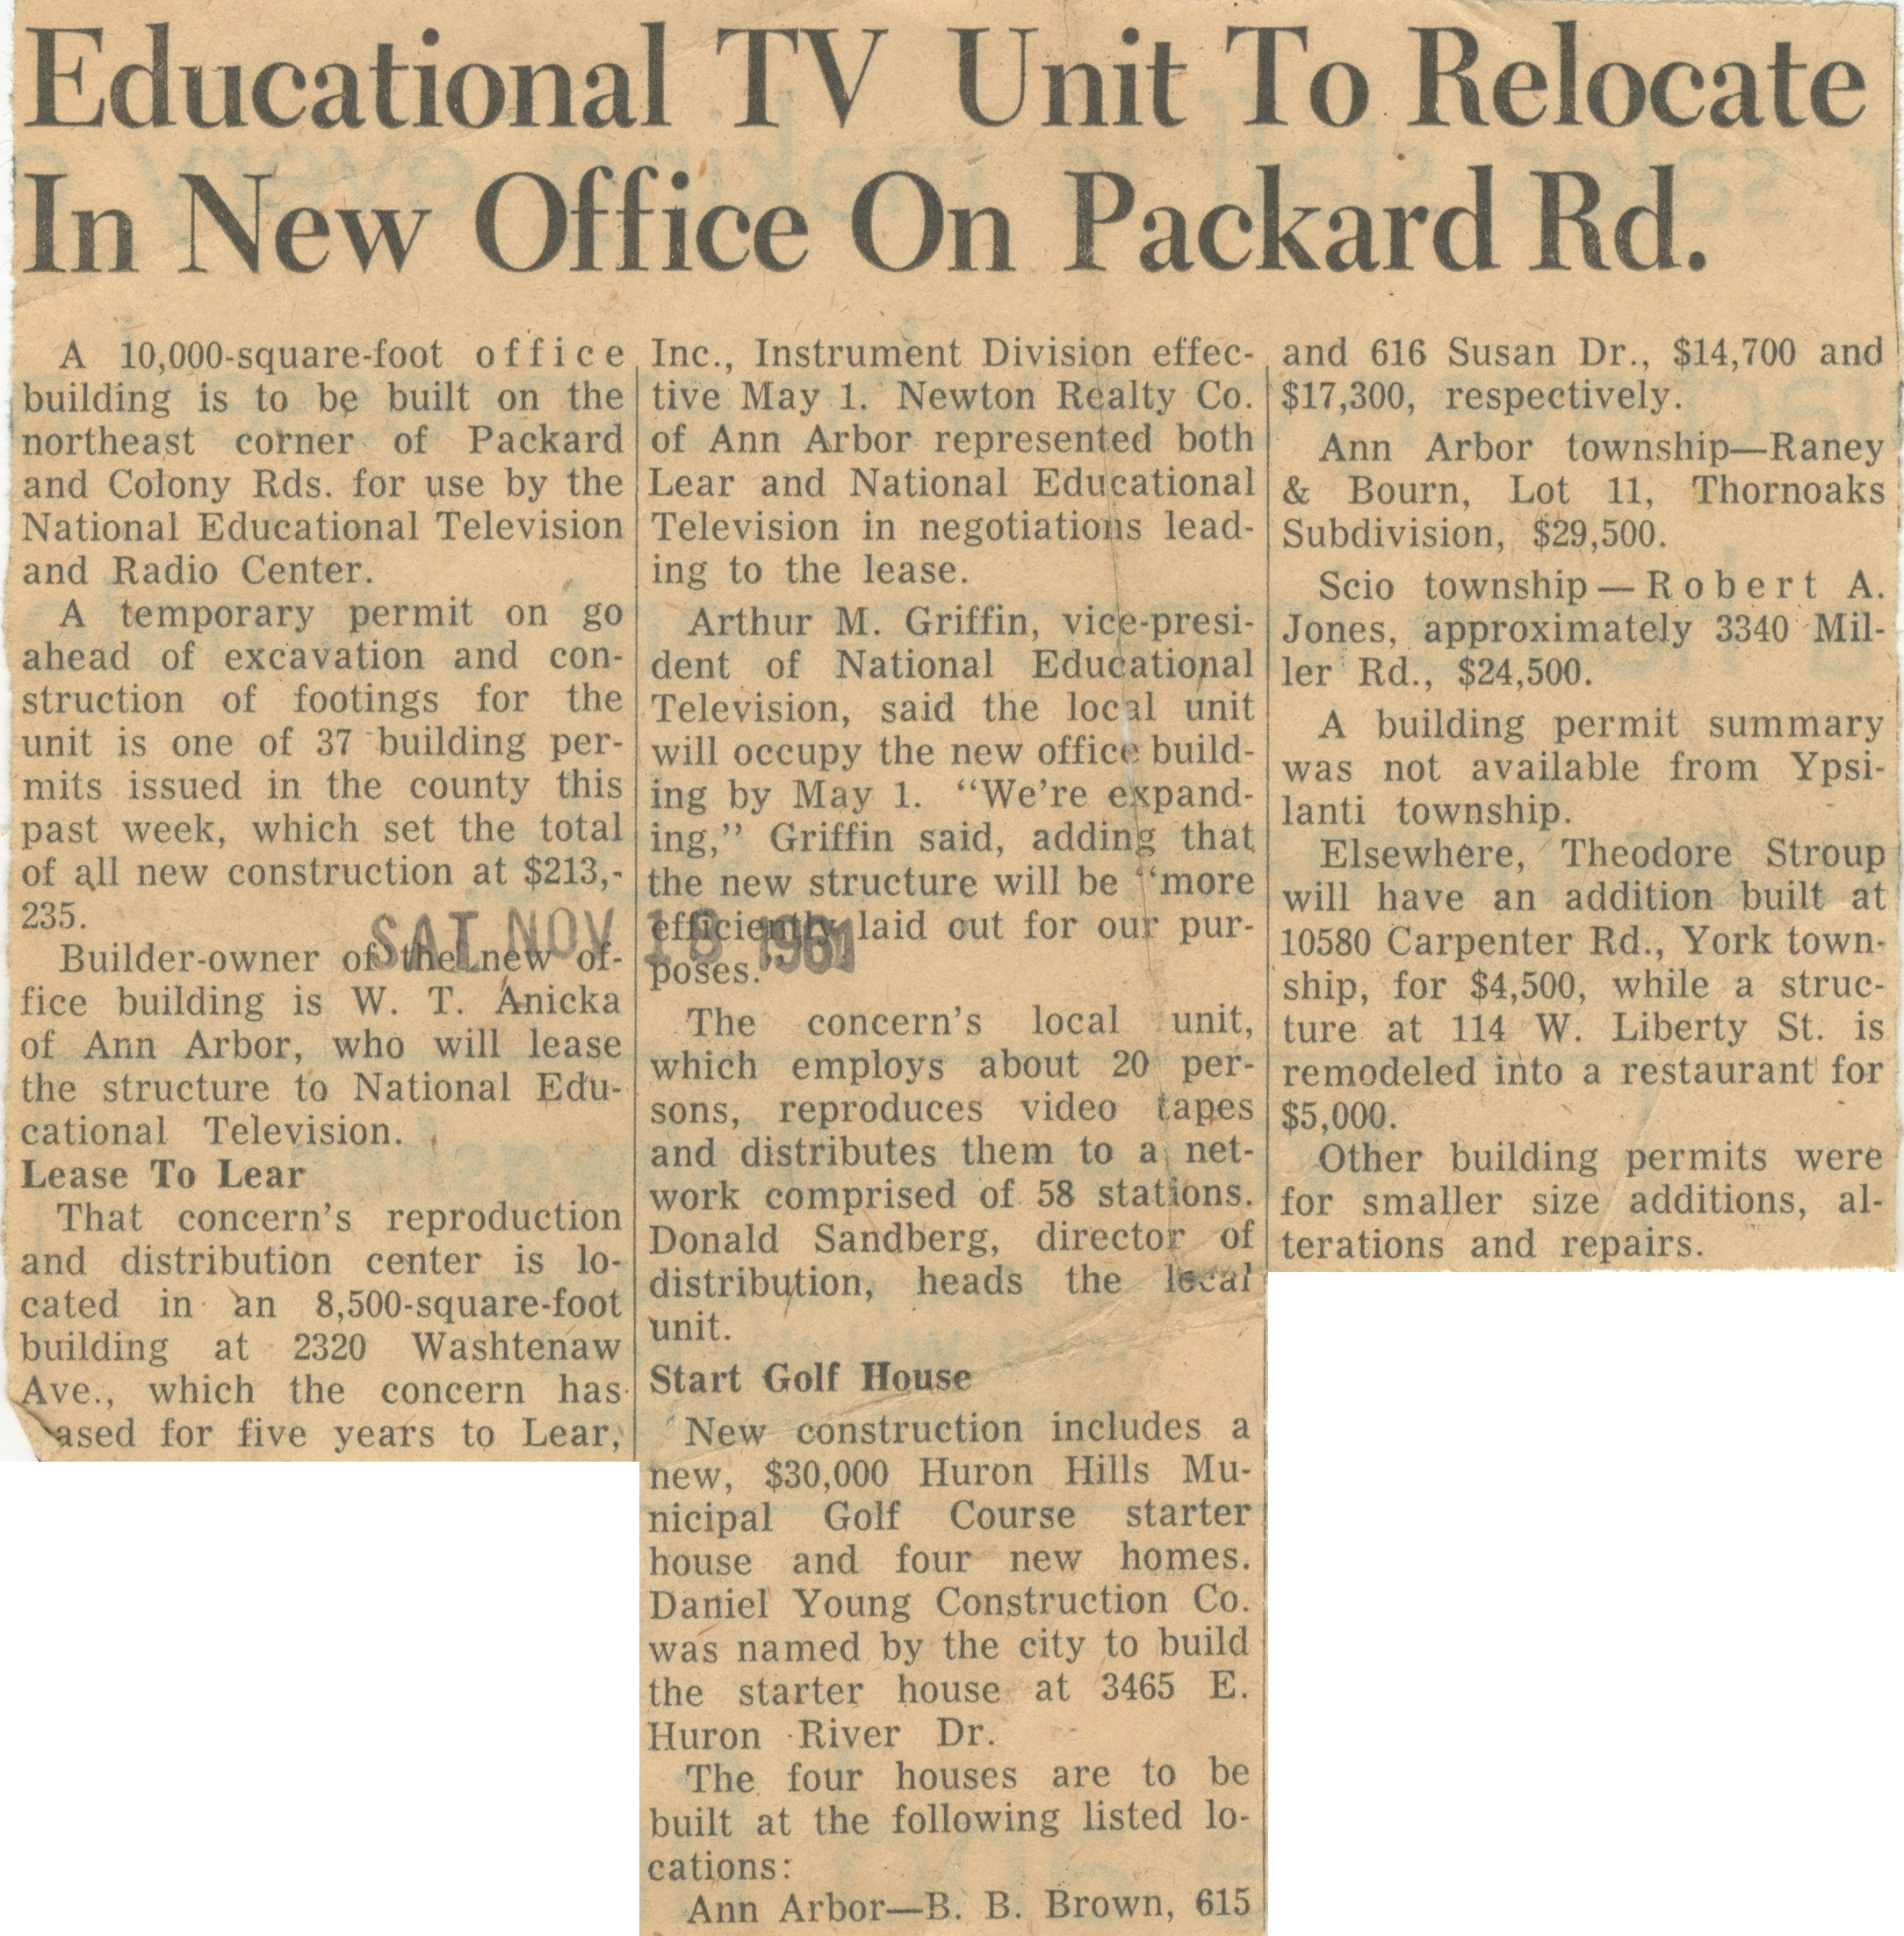 Educational TV Unit To Relocate In New  Office On Packard Rd. image